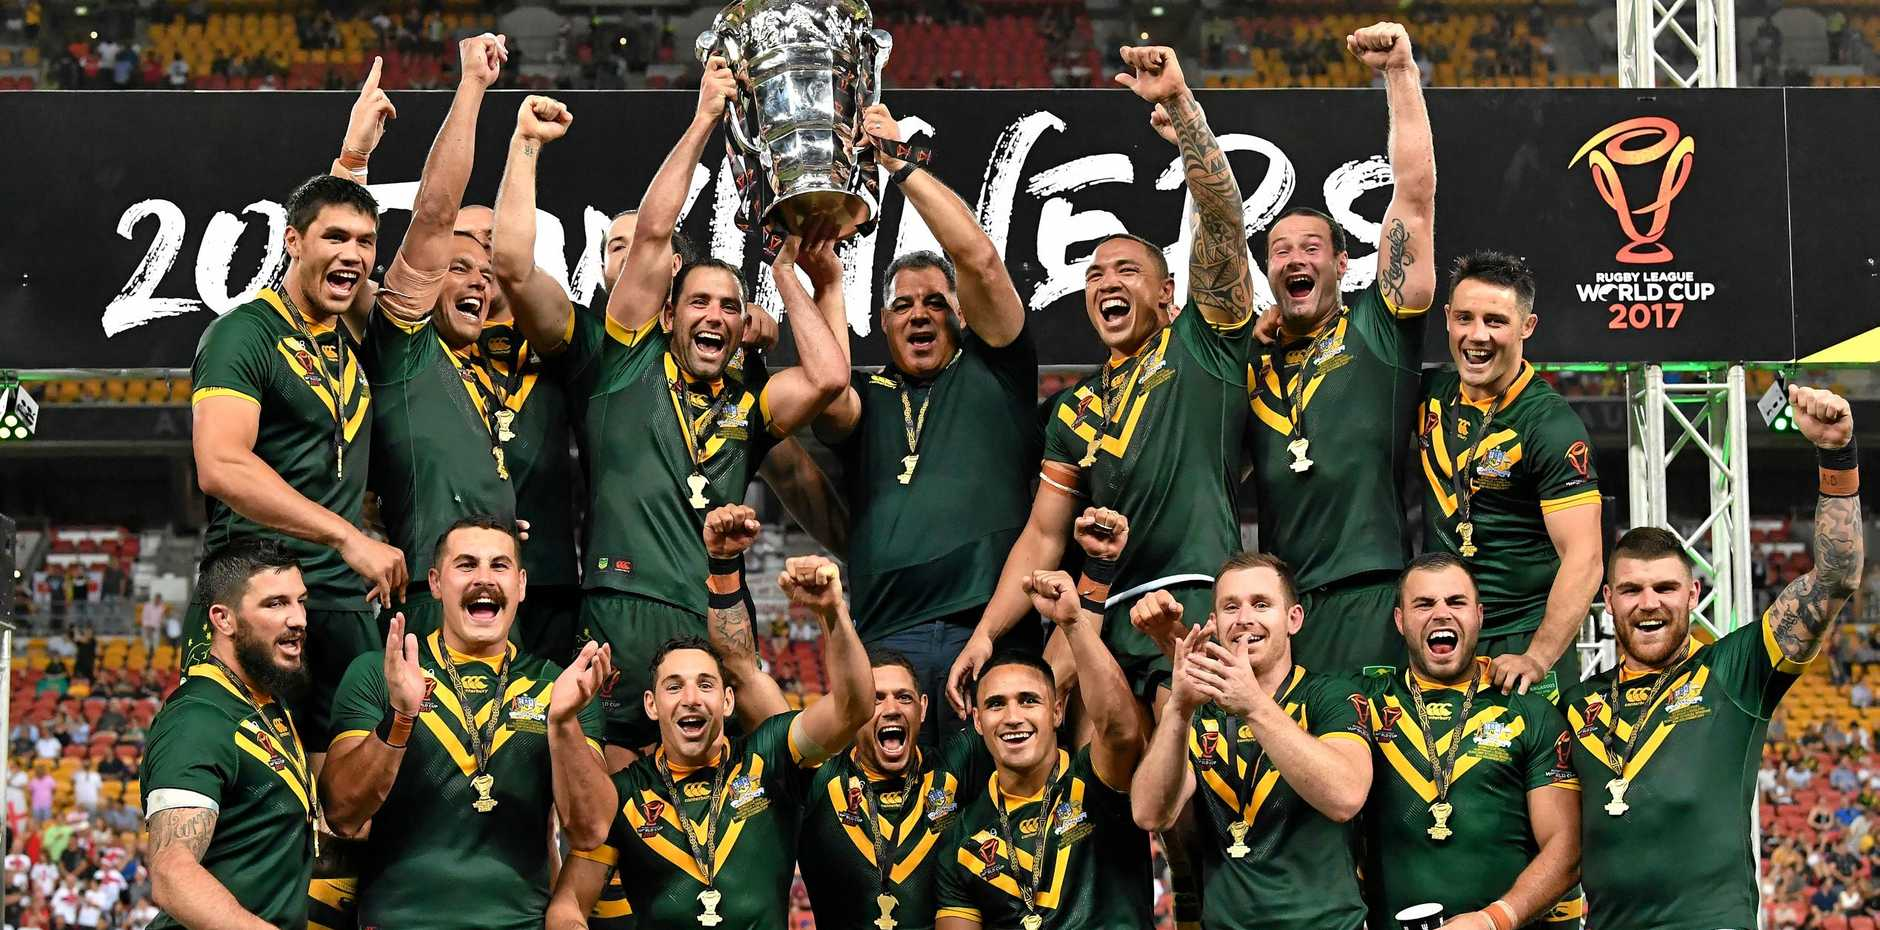 THE CHAMPIONS: Australia celebrates winning the Rugby League World Cup Final between the Australian Kangaroos and England played at Suncorp Stadium in Brisbane on Saturday.